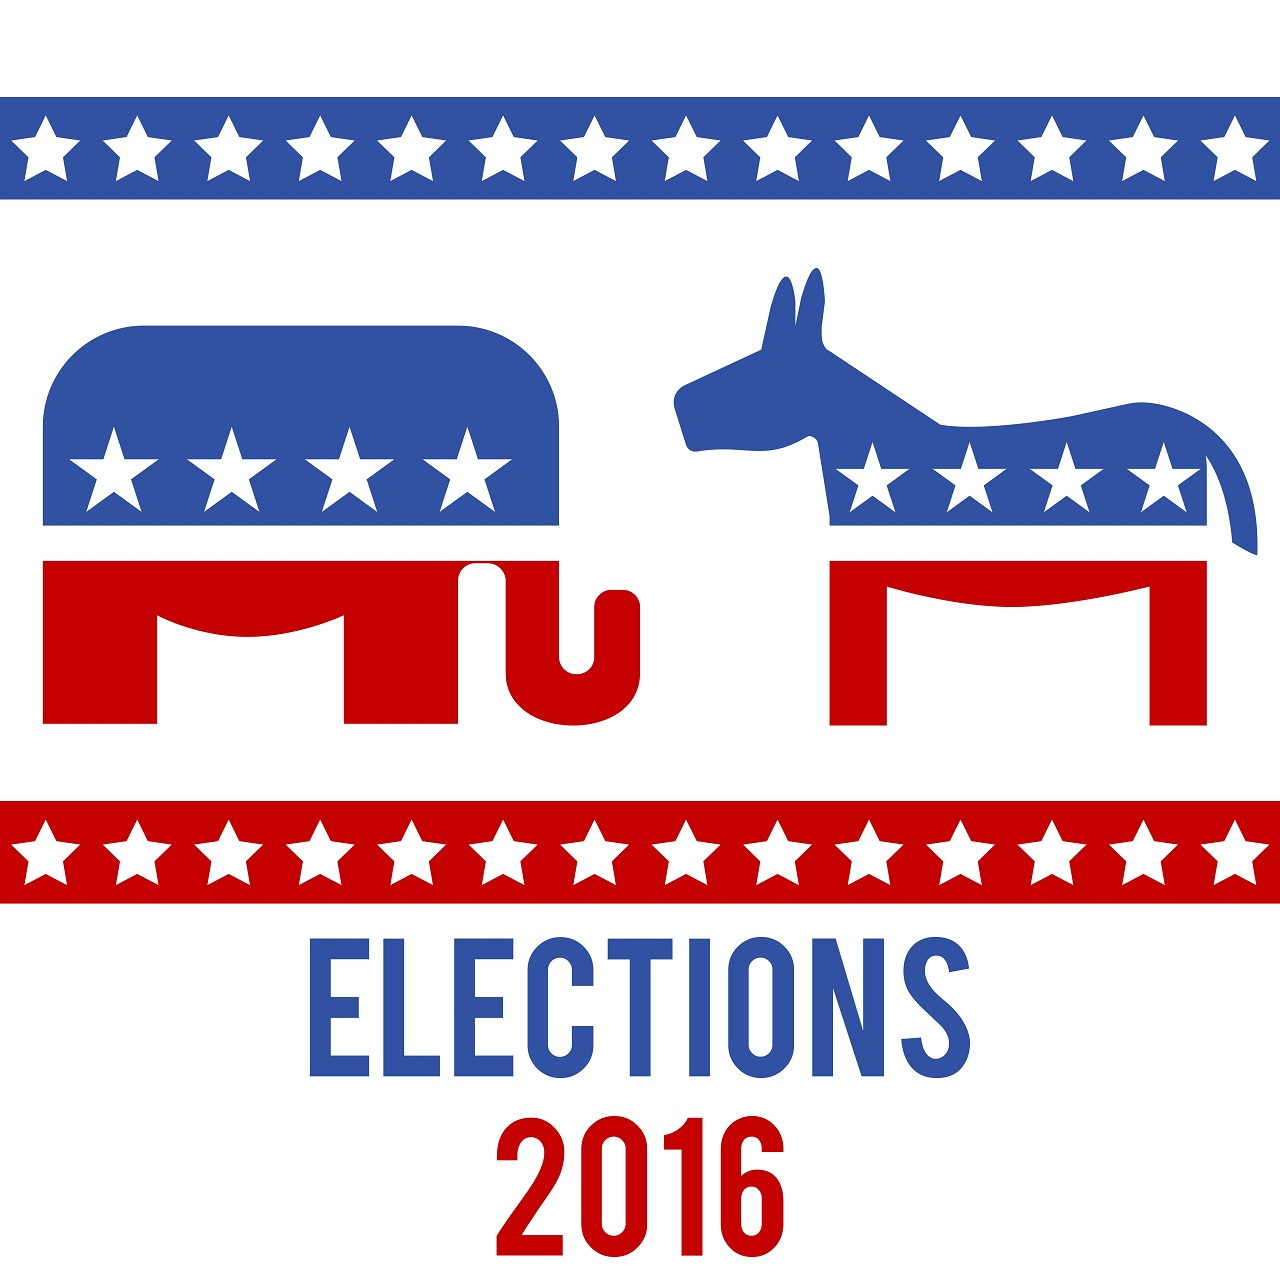 Elections 2016 icon